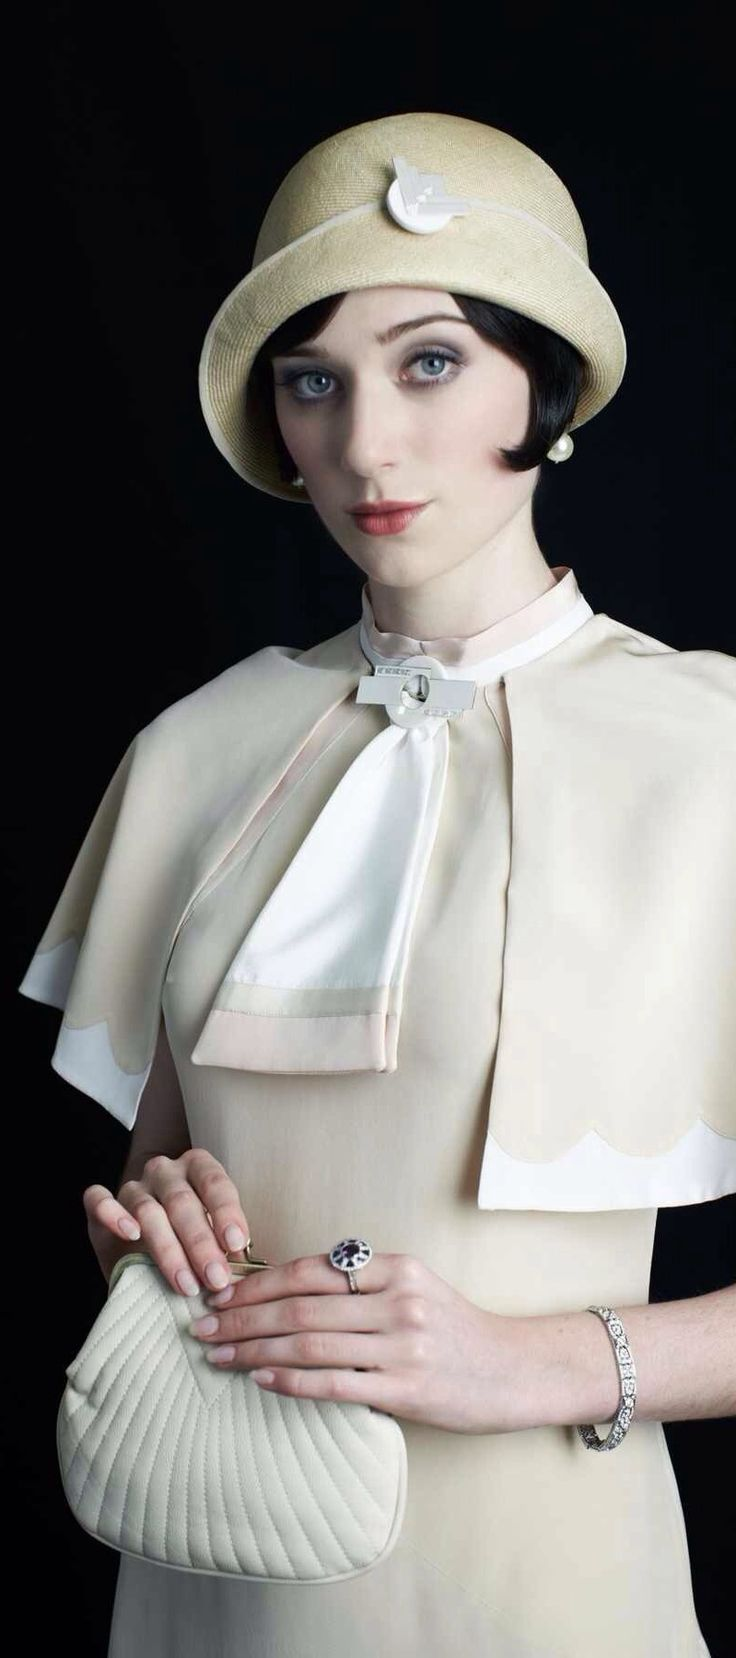 Elizabeth Debicki as Jordan Baker from 'The Great Gatsby' (2013). Costume Designer: Catherine Martin